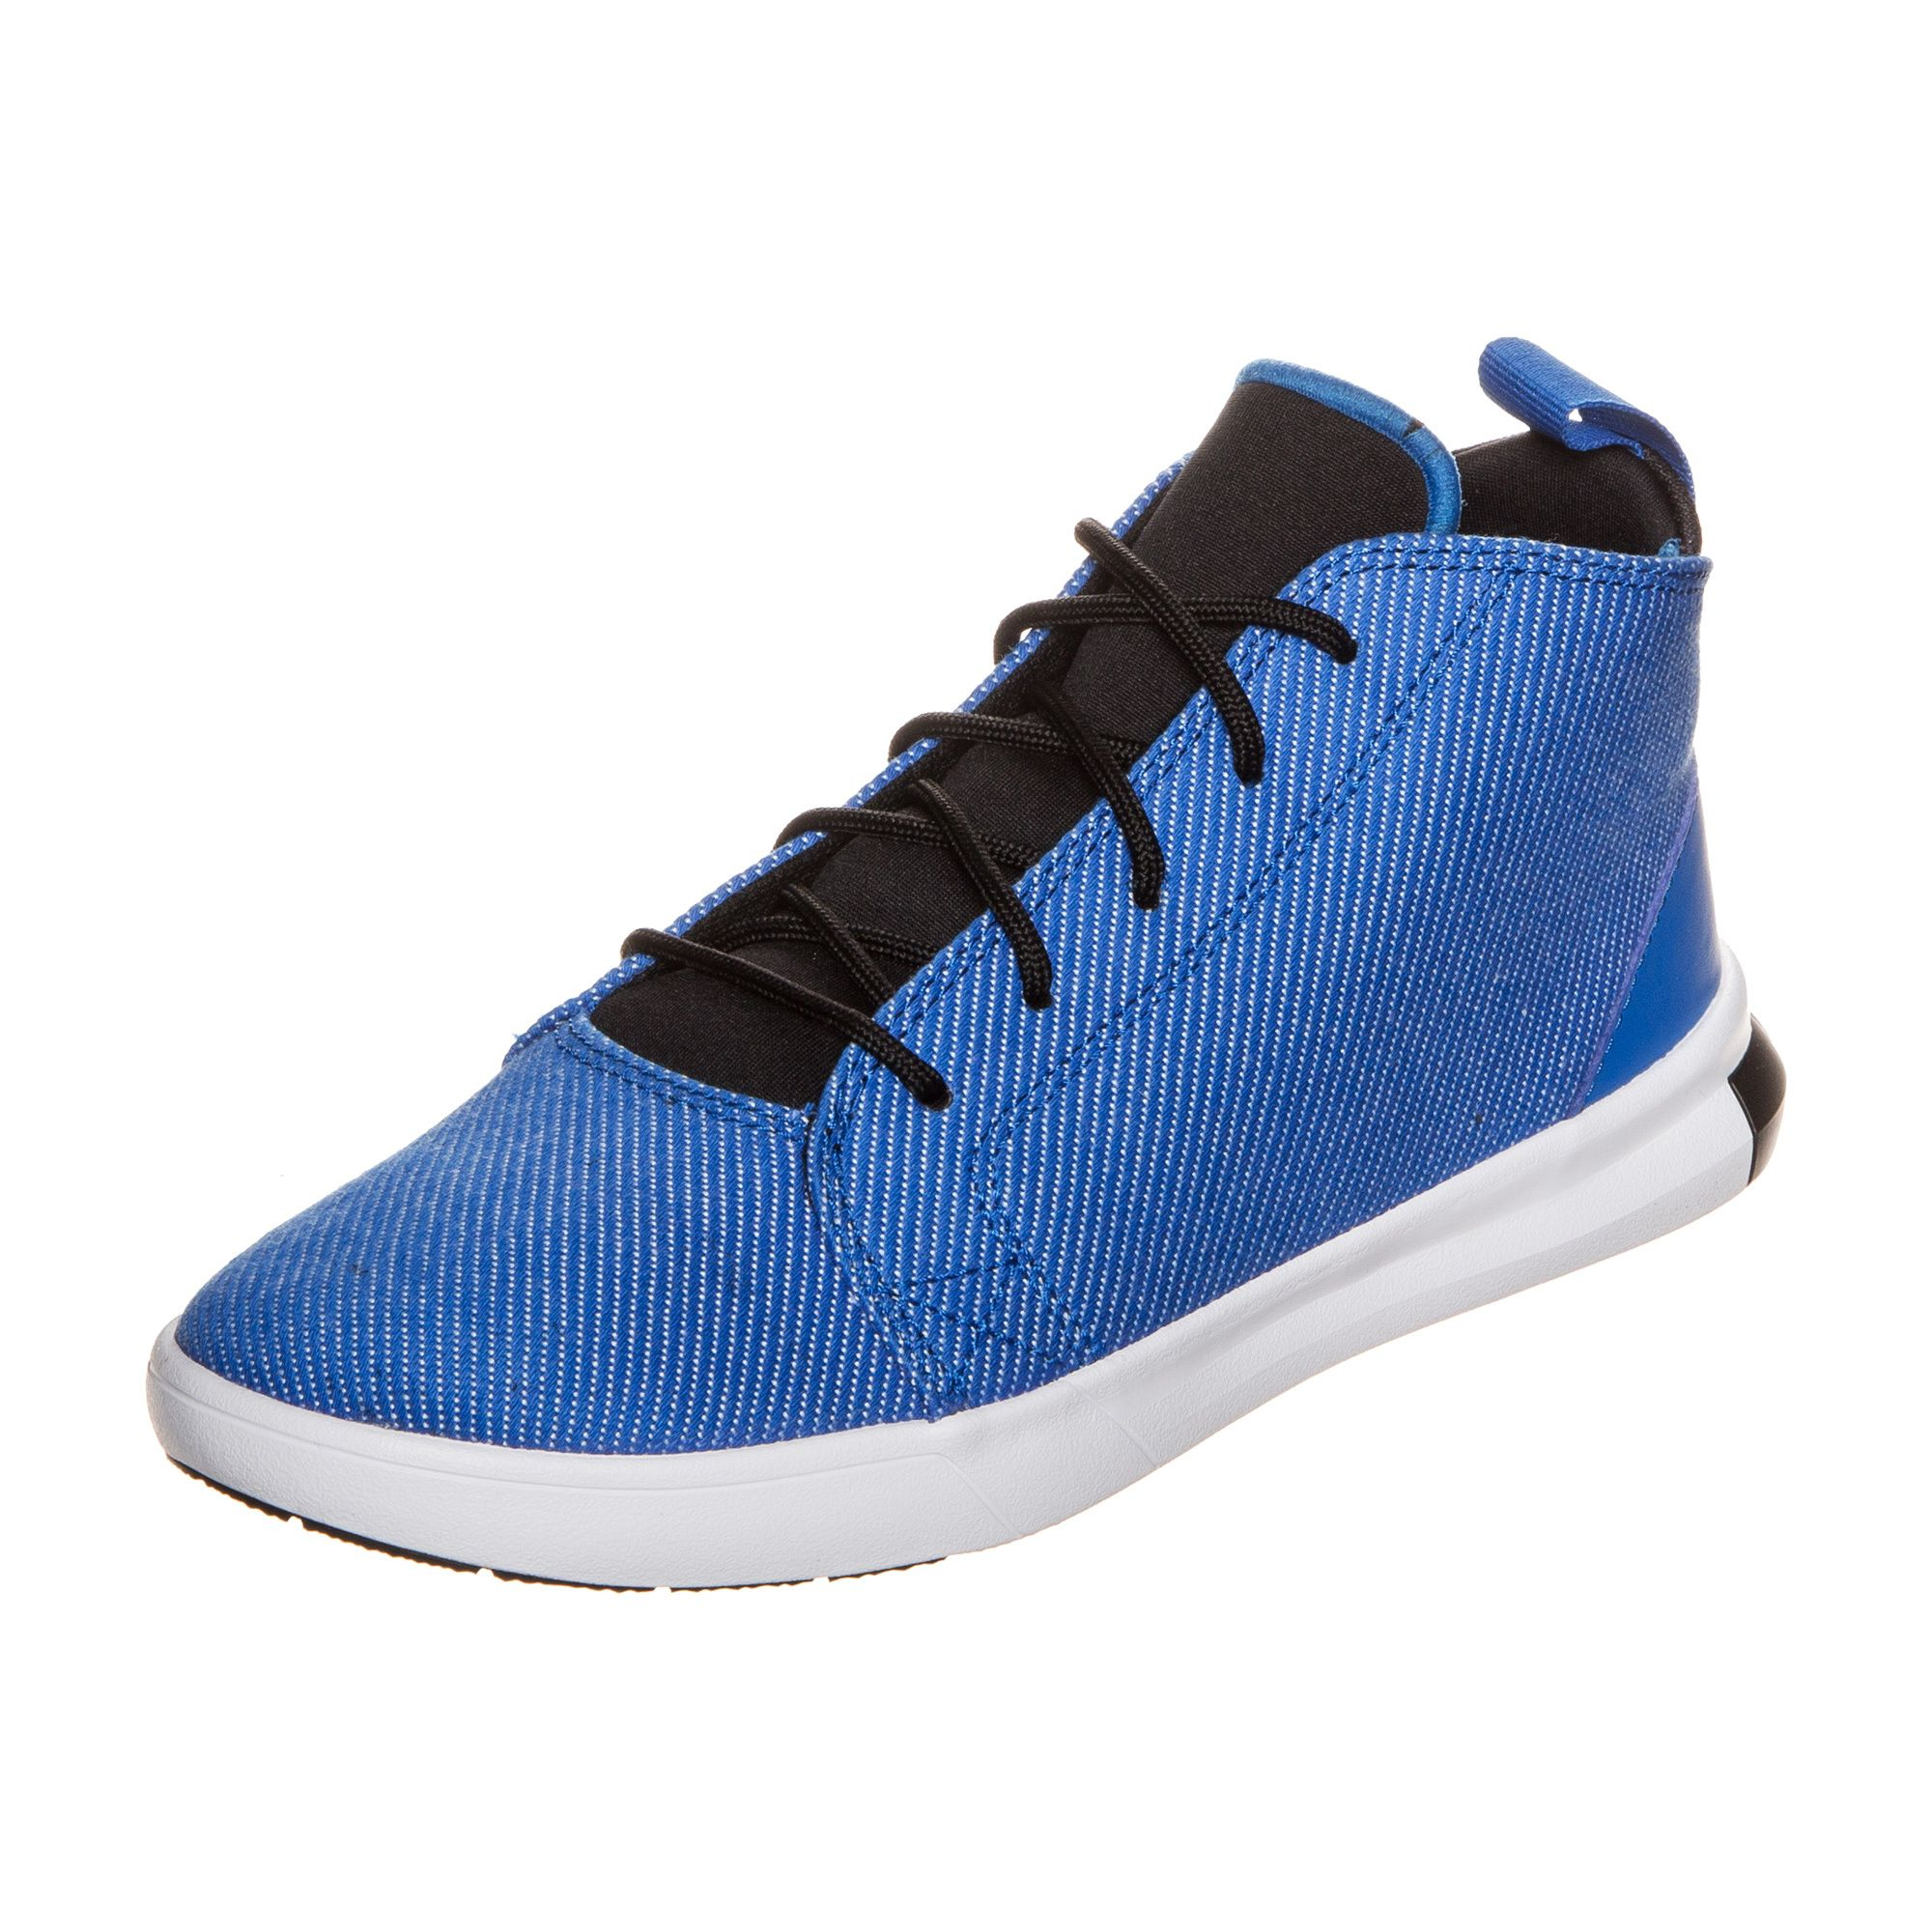 CONVERSE Converse Chuck Taylor All Star Easy Ride Mid Sneaker Kinder